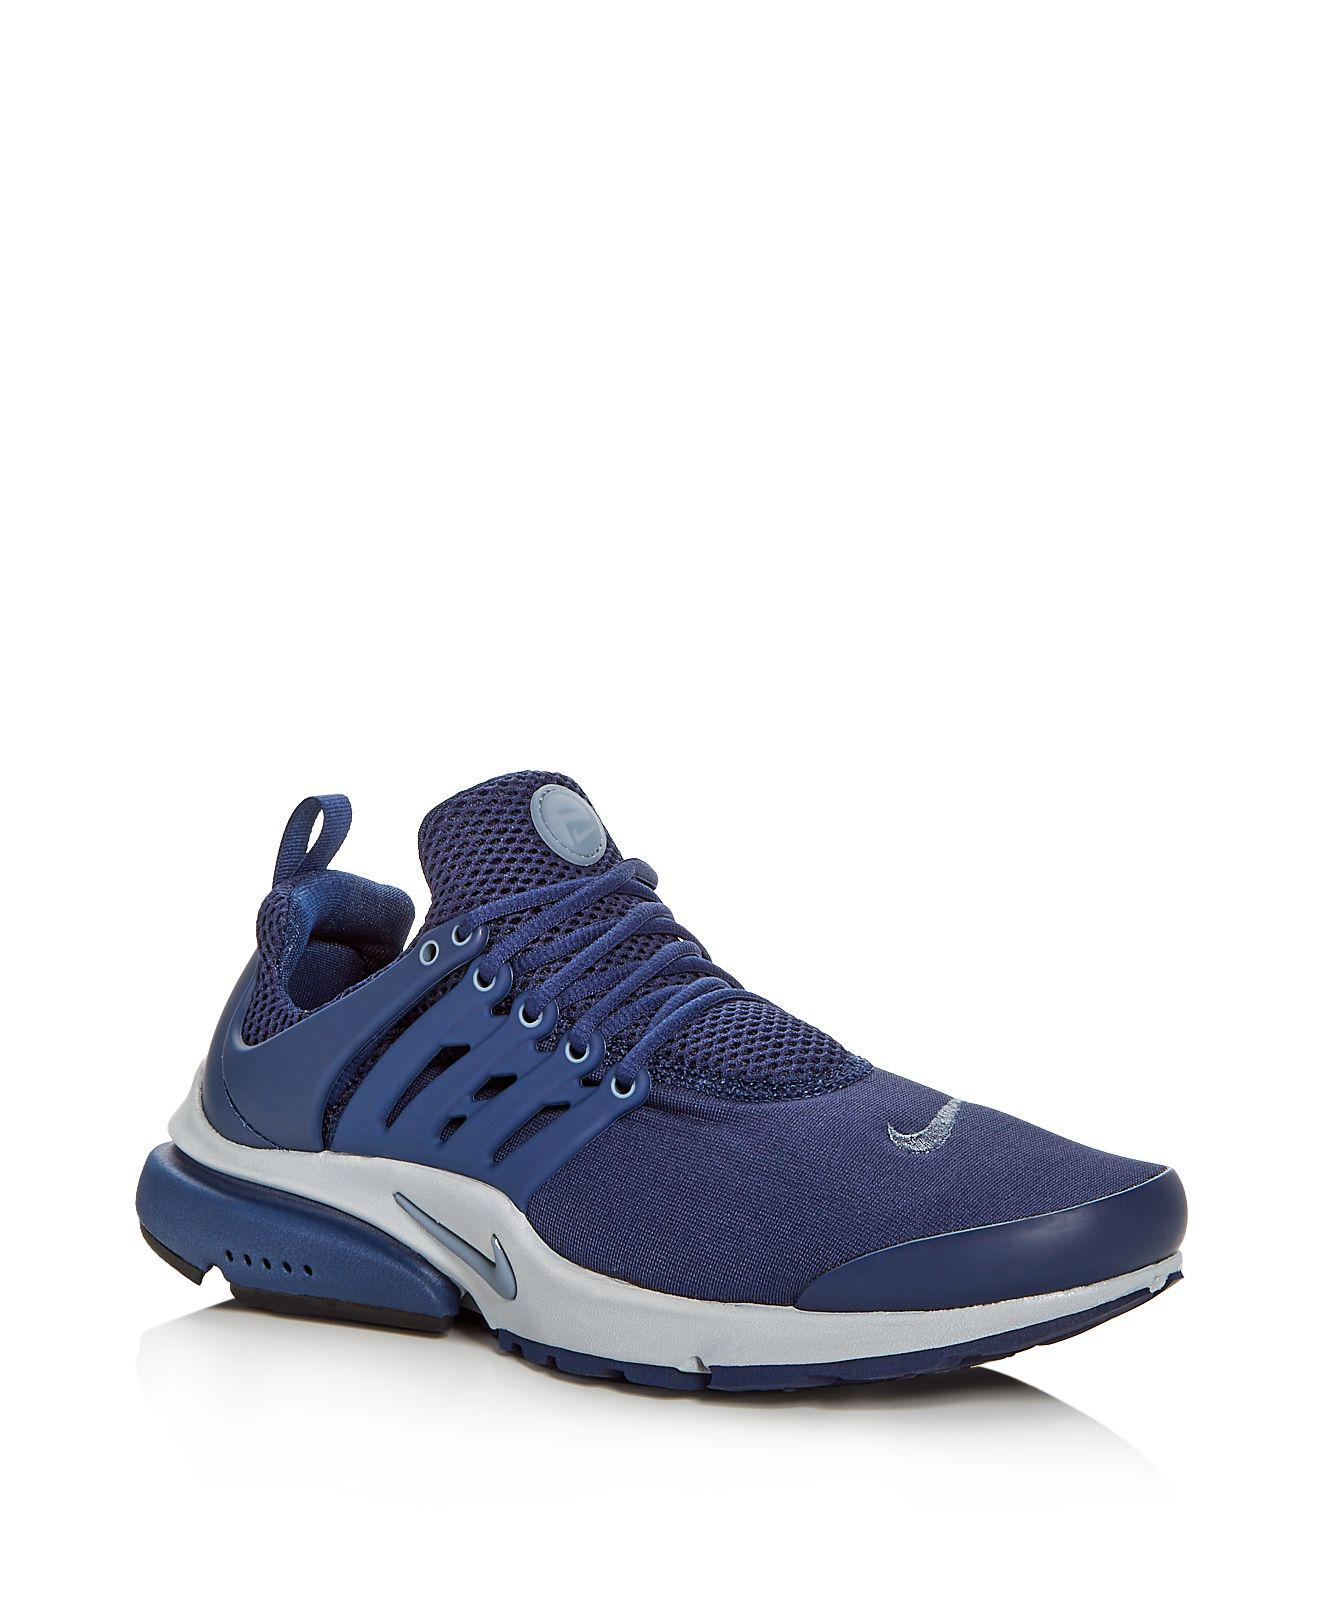 eb138b2d81b0 Lyst - Nike Men s Air Presto Essential Lace Up Sneakers in Blue for Men